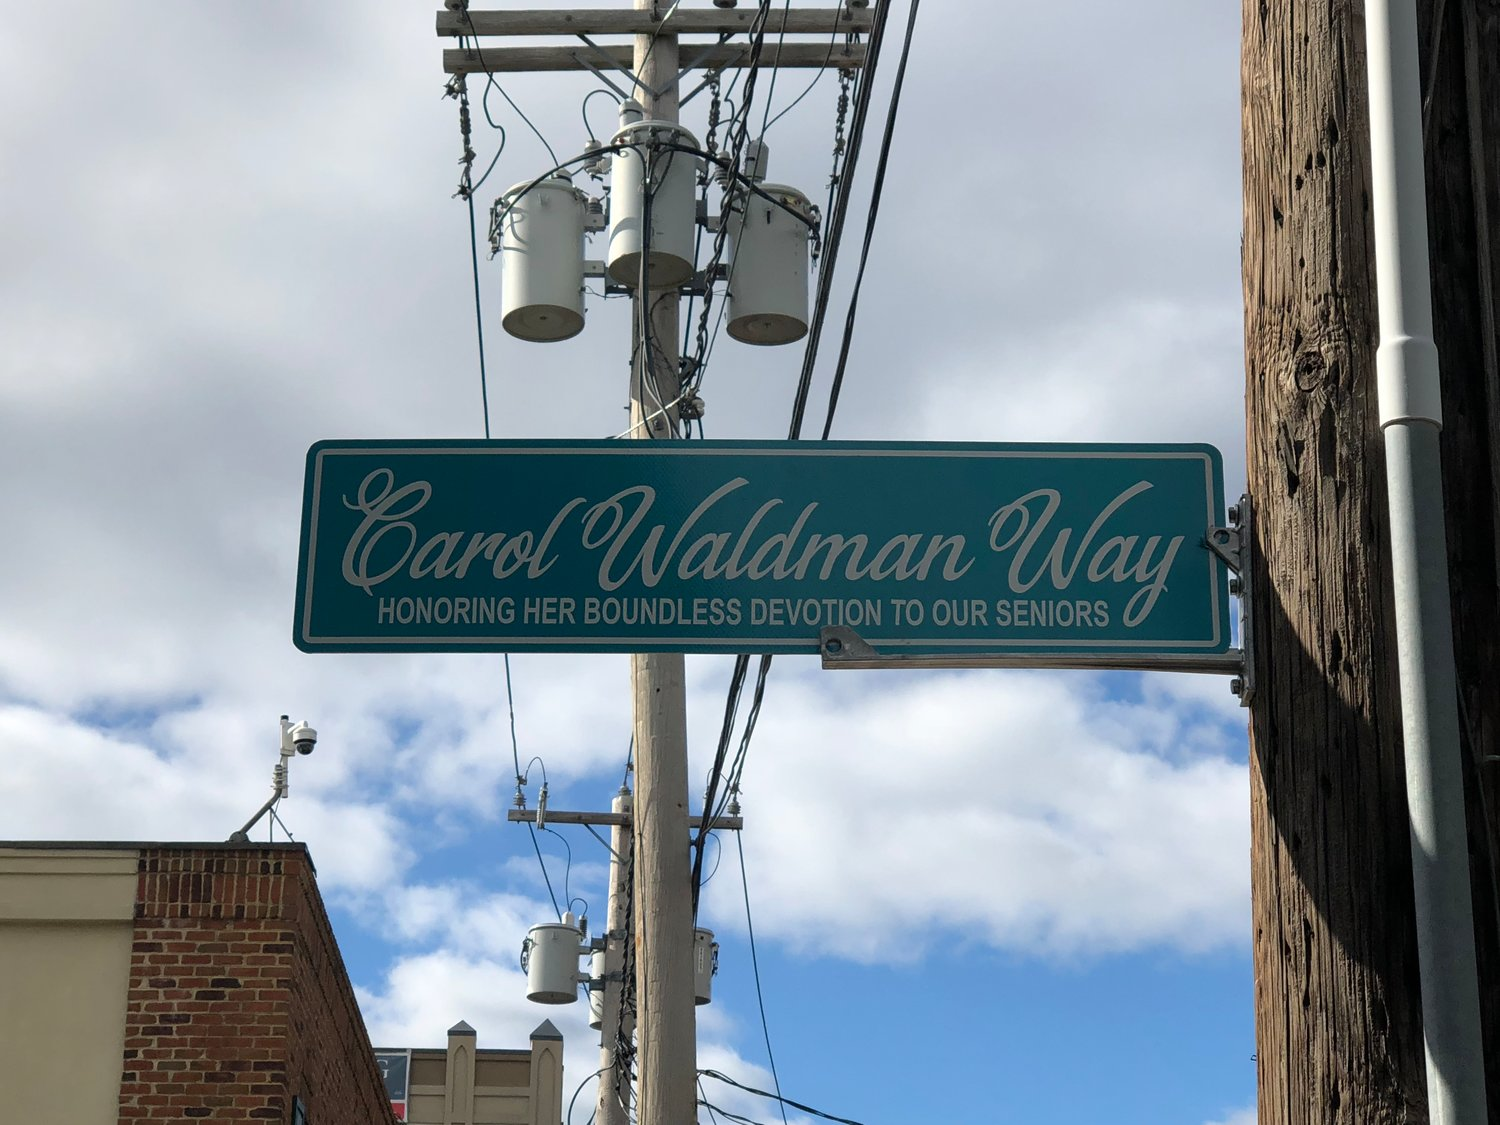 The City of Glen Cove has designated the road leading into the senior center as Carol Waldman Way.